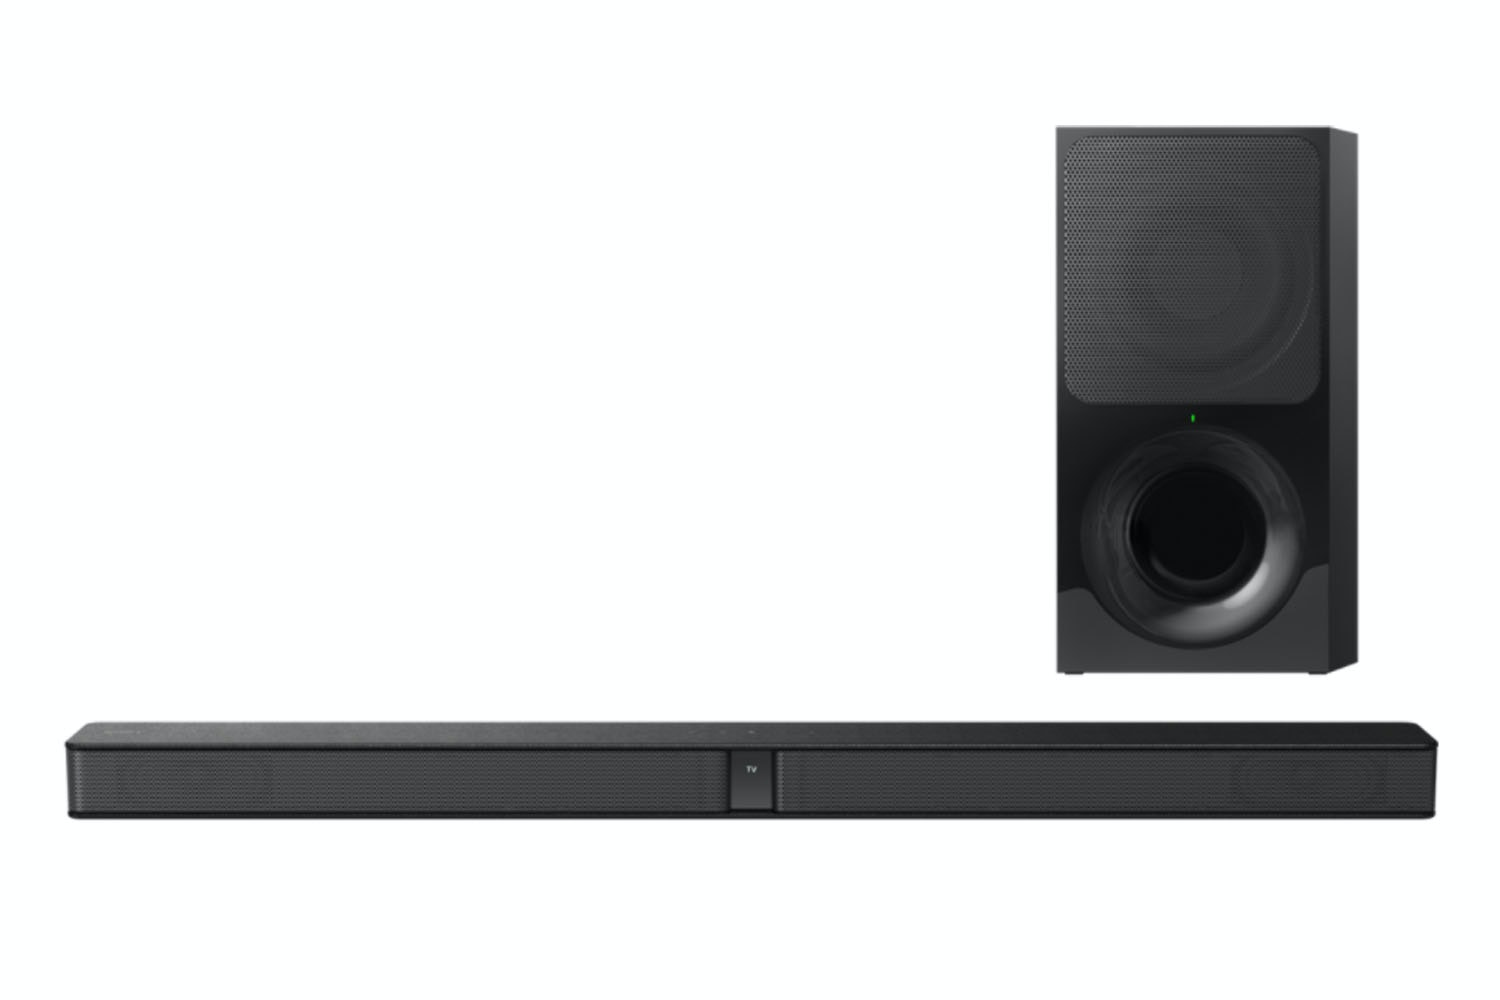 Sony HT-CT290 2.1ch Soundbar with Wireless Subwoofer